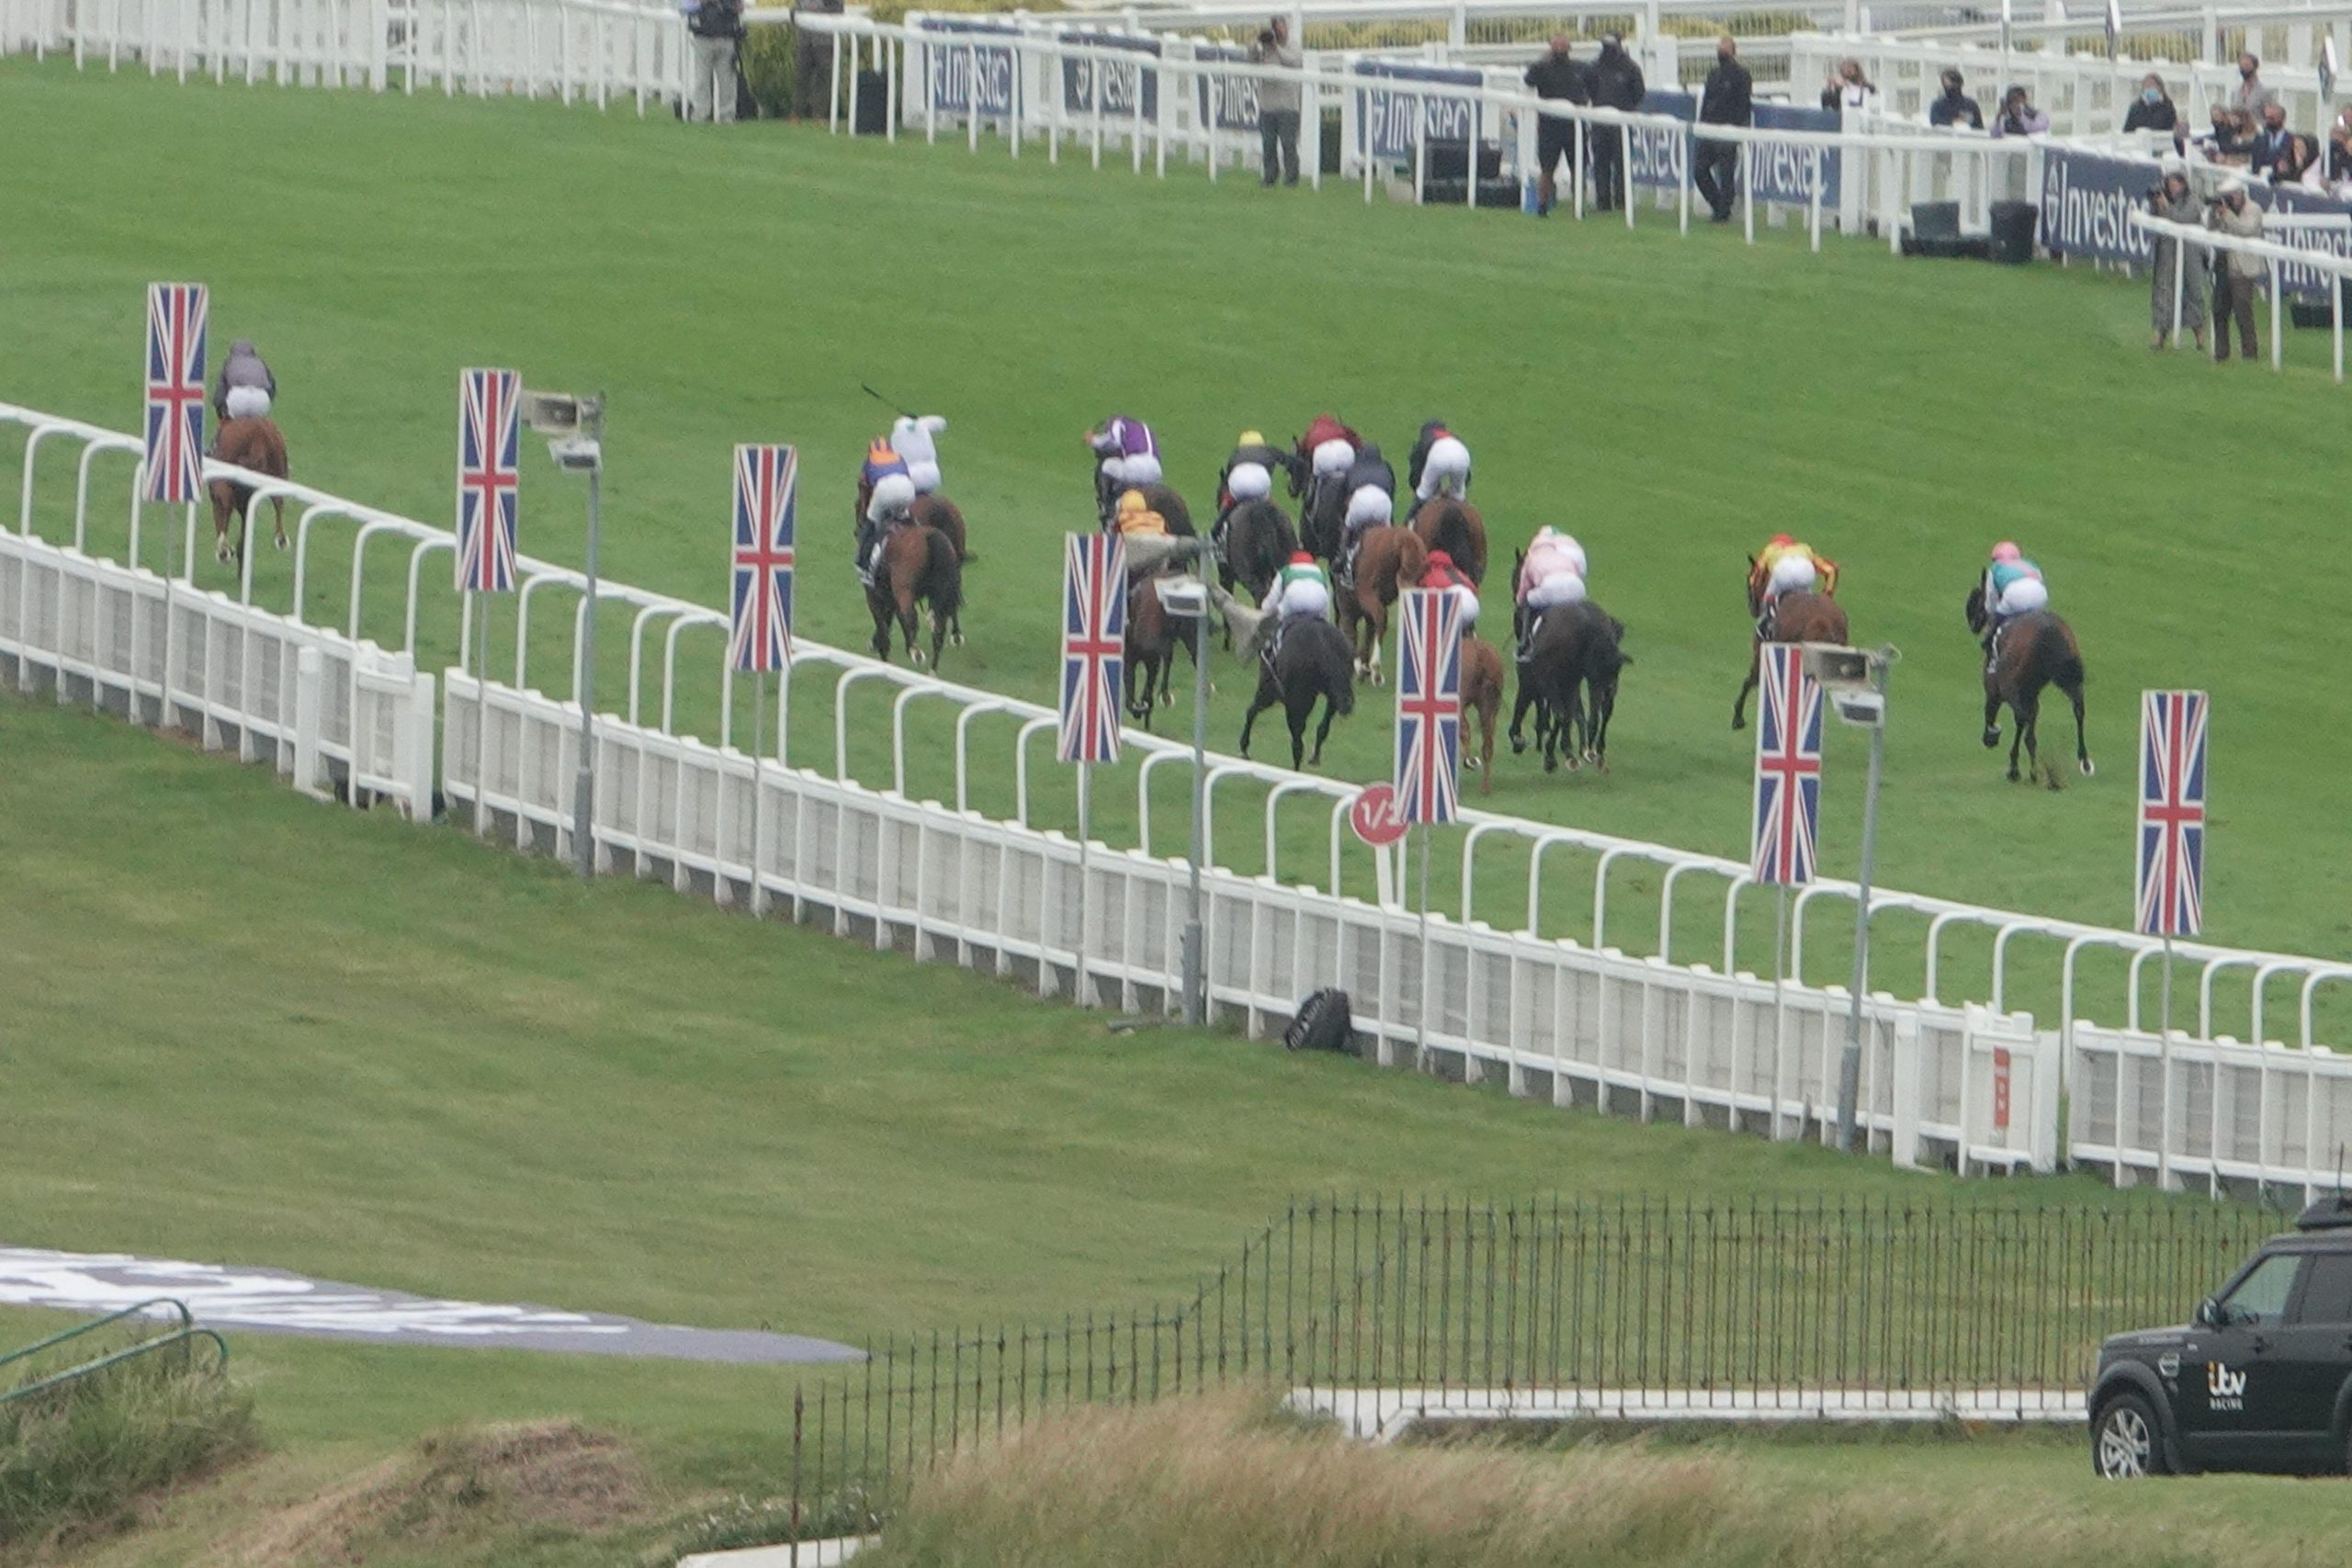 2C5P5XC Epsom, Surrey, UK. 4th July, 2020. Action, behind closed doors-due to the Covid-19 restrictions- at The Derby as the bulk of the field chase winner, Serpentine with an 8 length lead up hill to the finish Credit: Motofoto/Alamy Live News